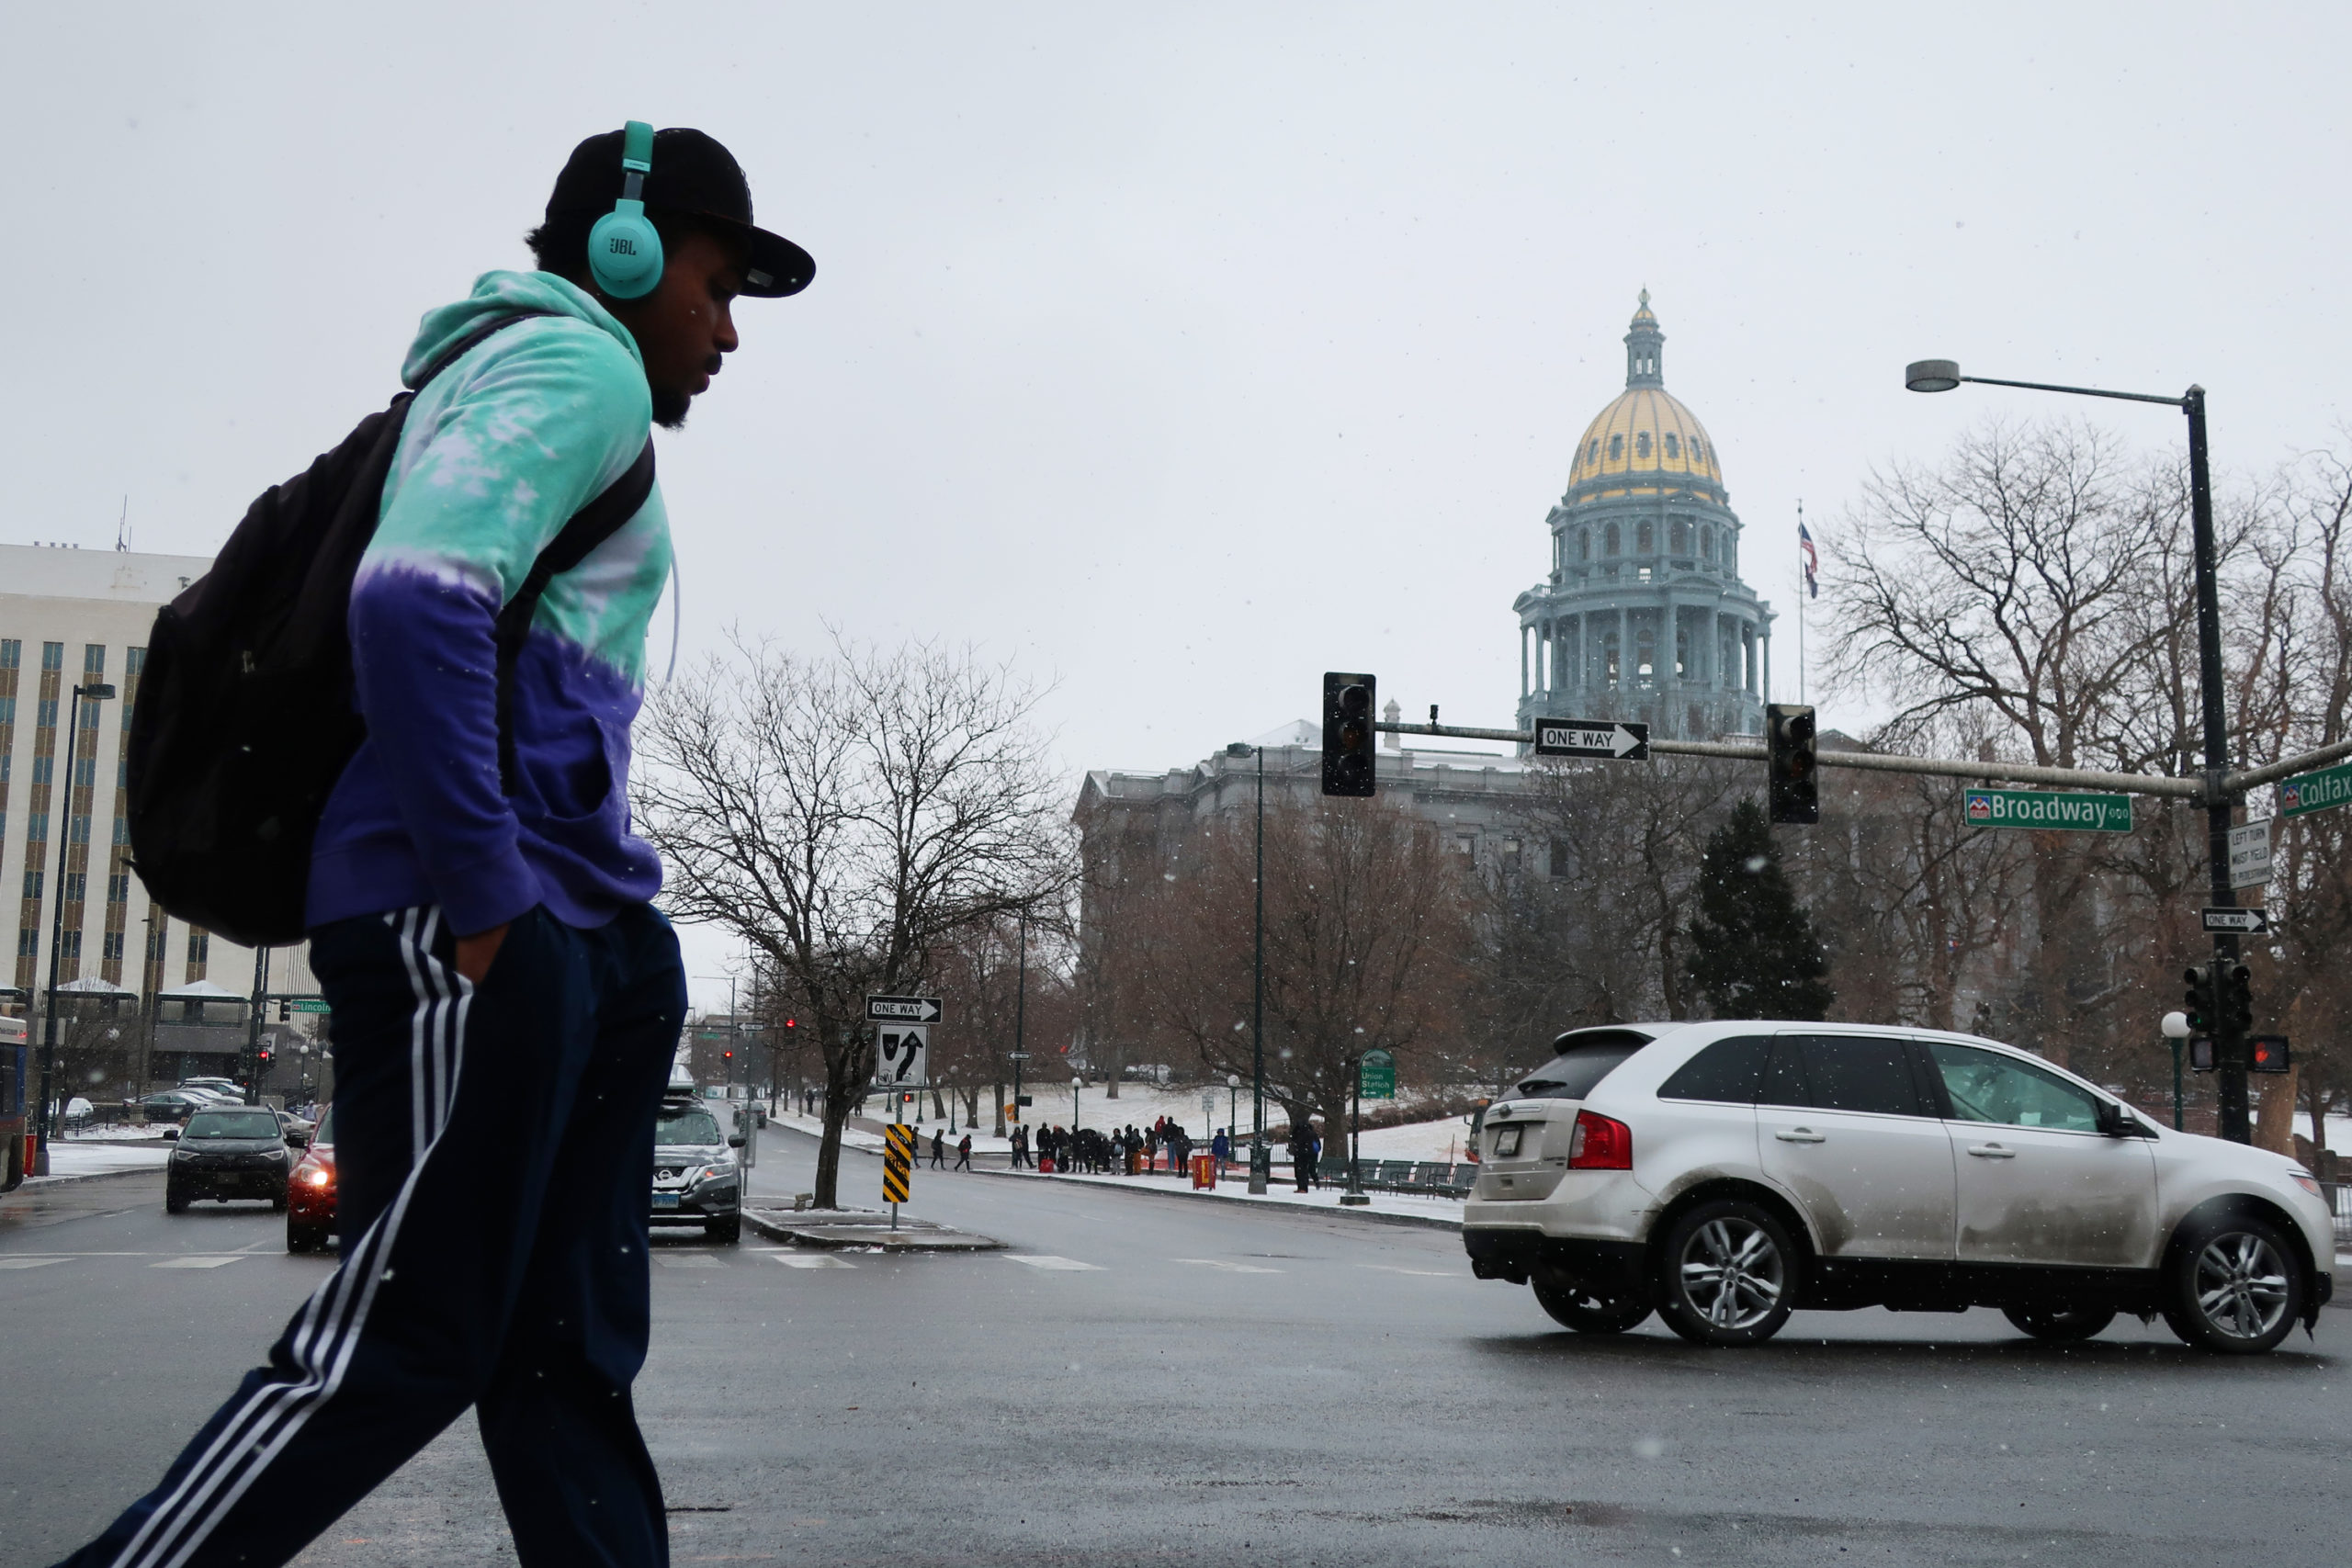 Denverites make their way through Monday's snowstorm by foot and by car on Feb. 3, 2020.